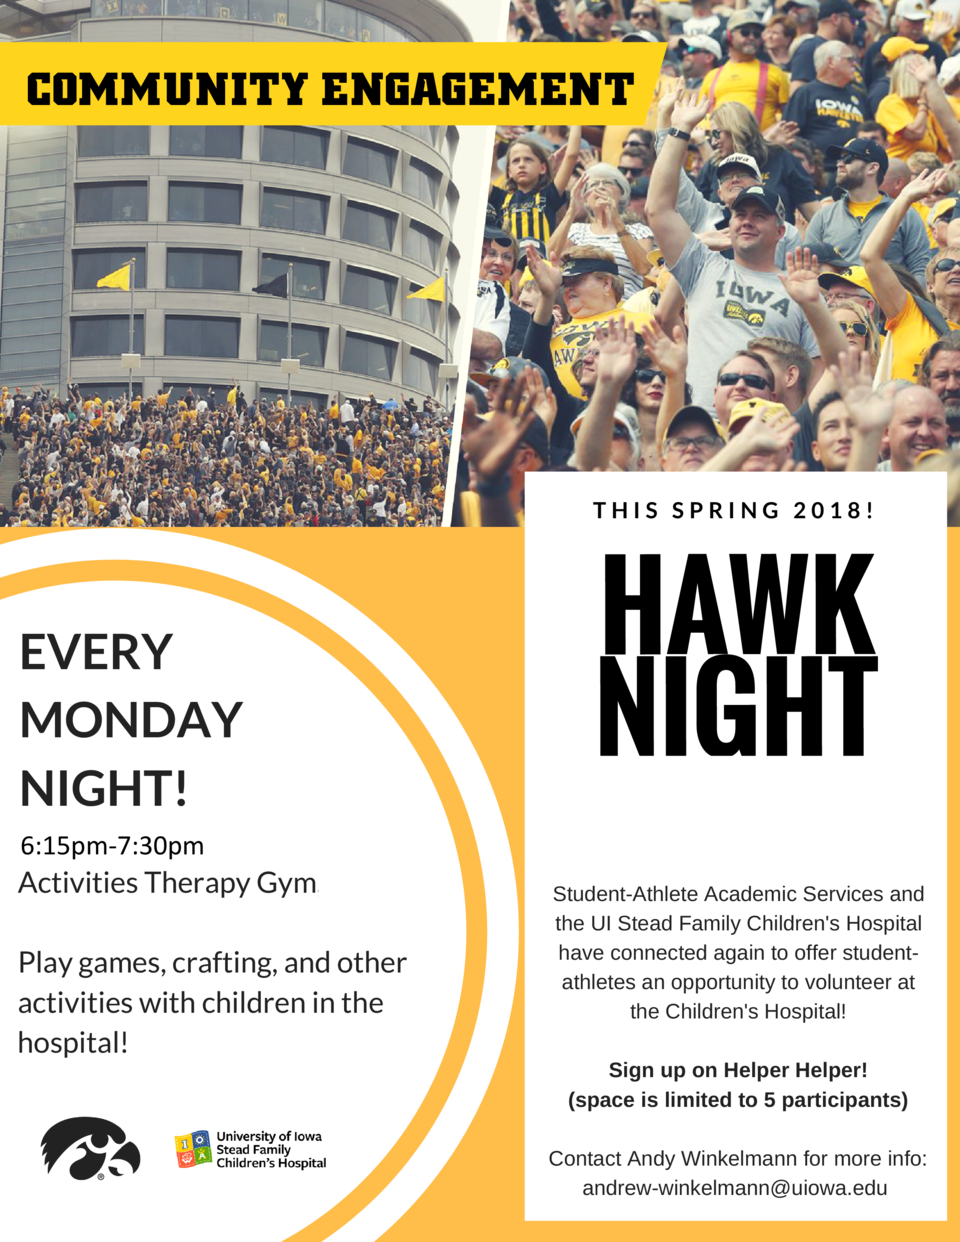 COMMUNITY ENGAGEMENT  THIS SPRING 2018   EVERY MONDAY NIGHT  6 30-7 30pm 6 15pm-7 30pm Activities Therapy Gym, SFCH Play g...